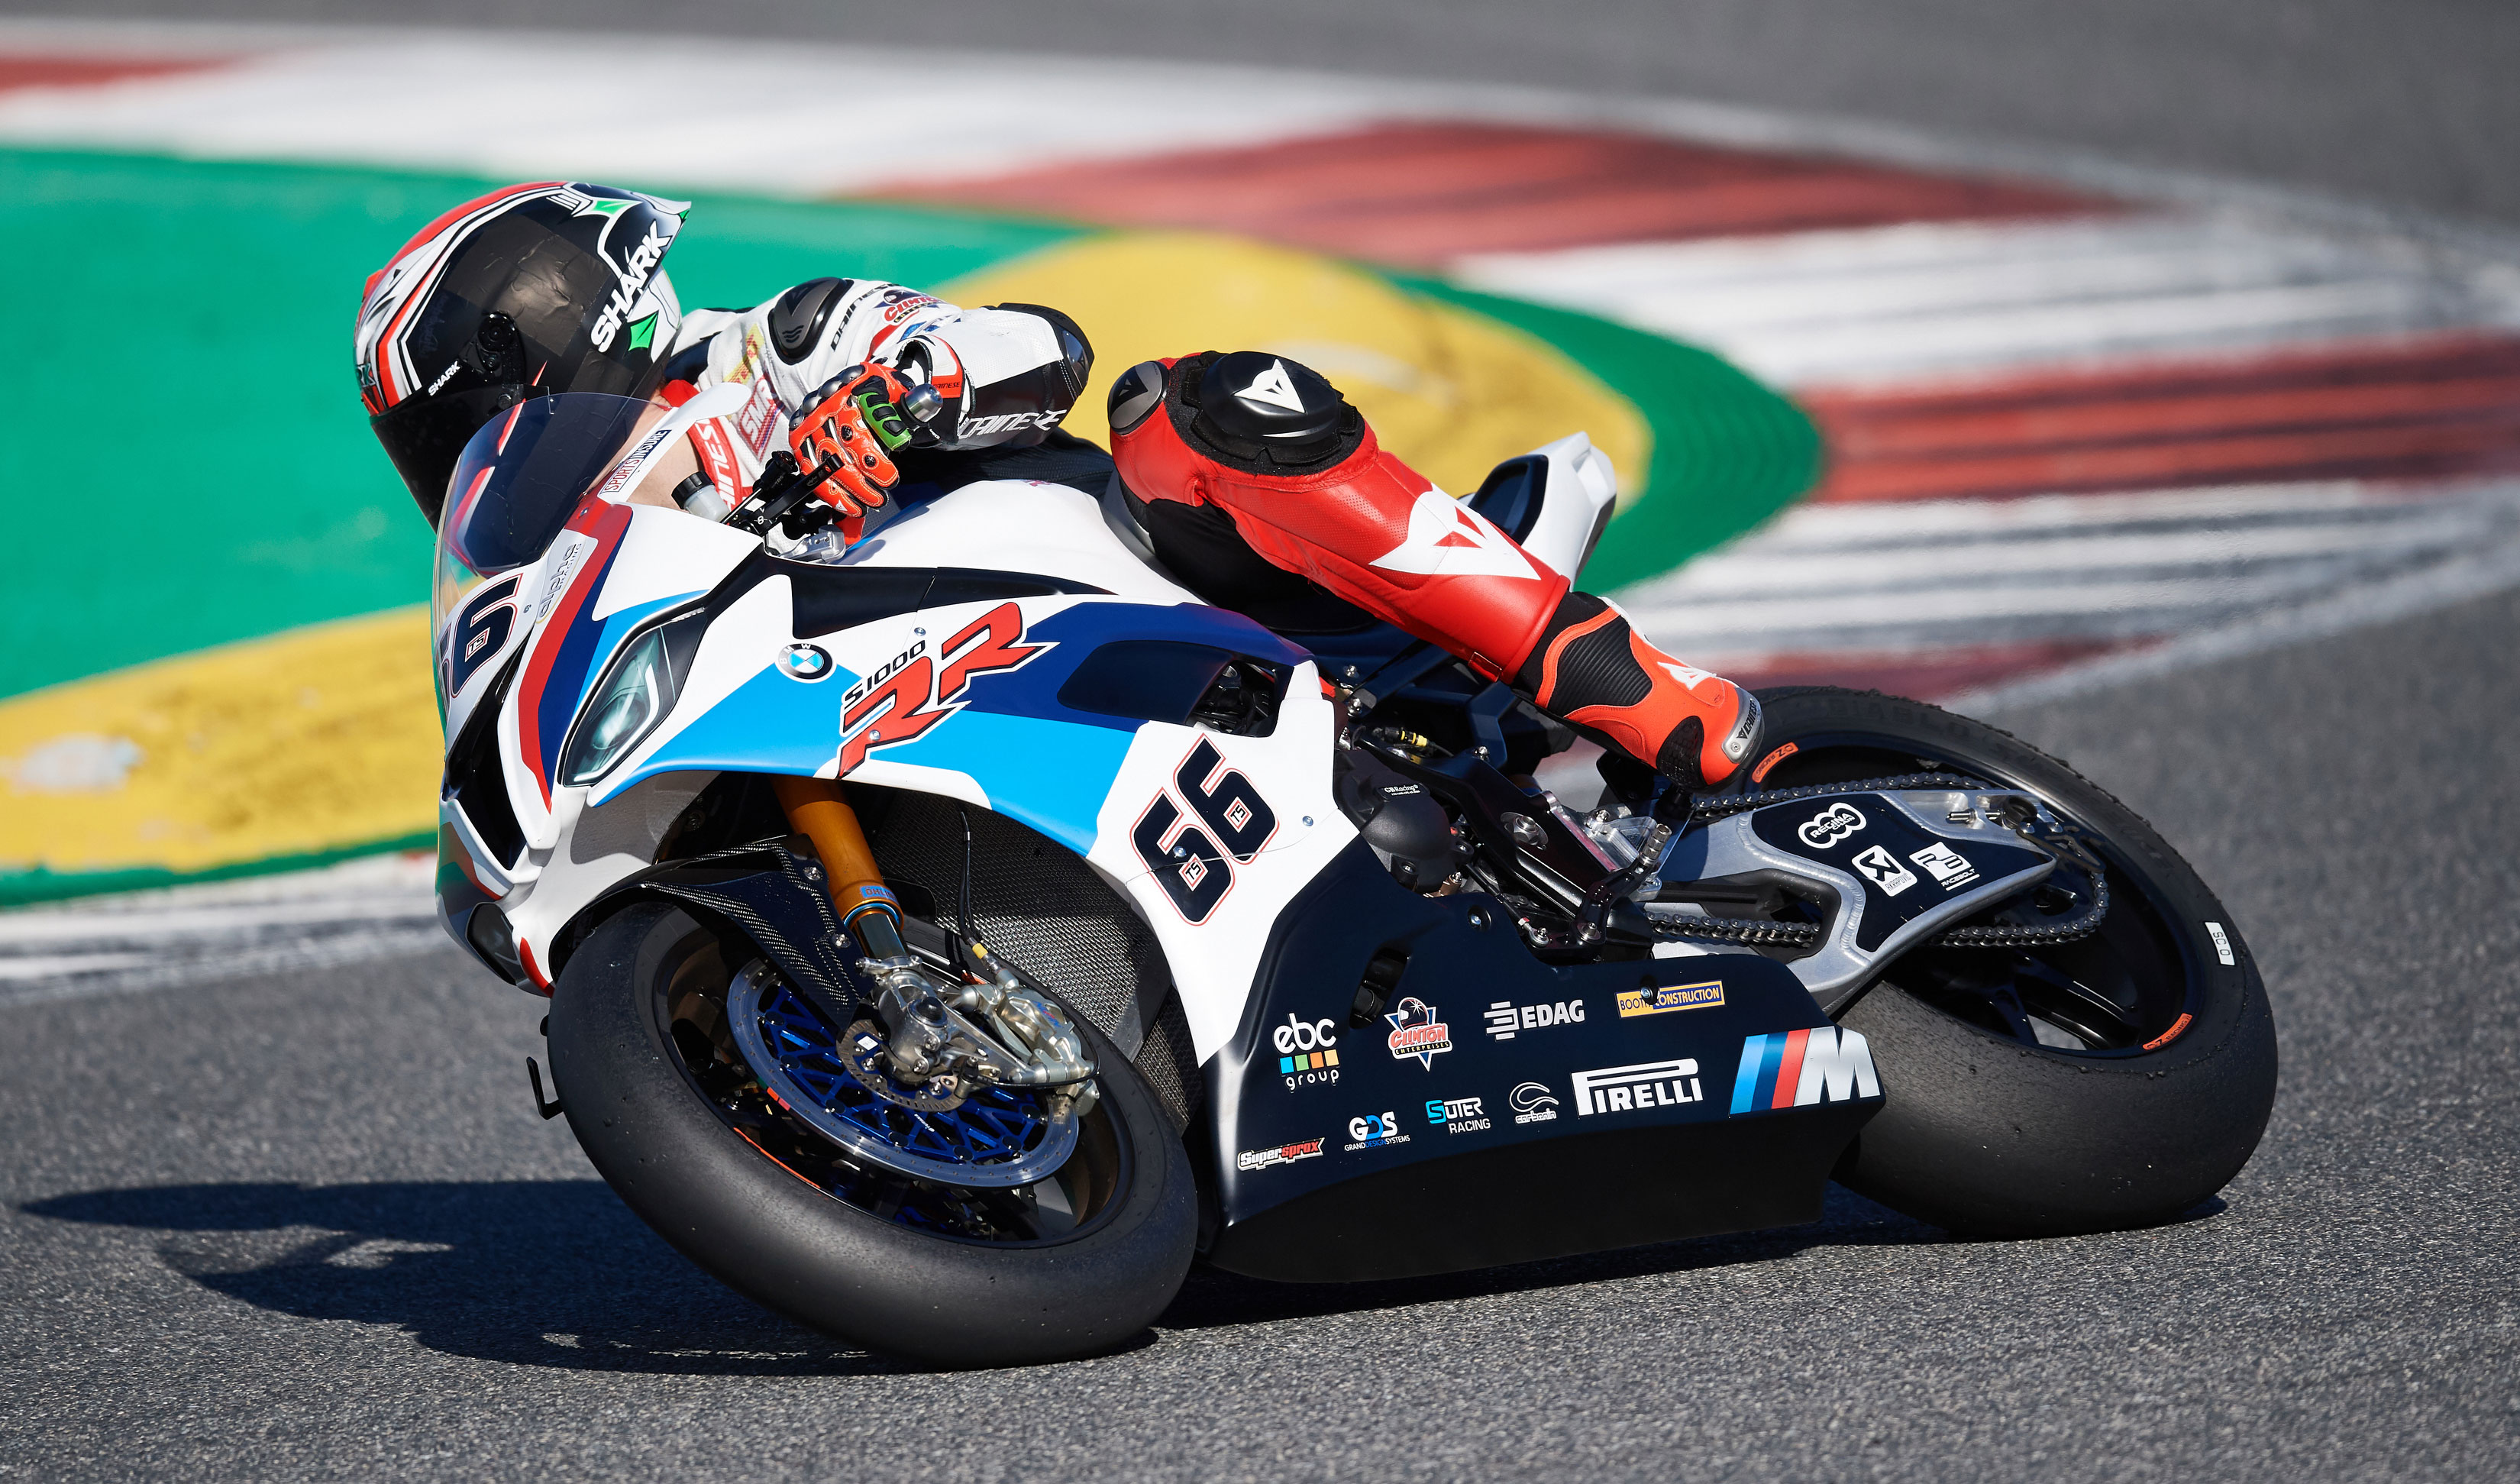 Tom Sajks, BMW S1000RR